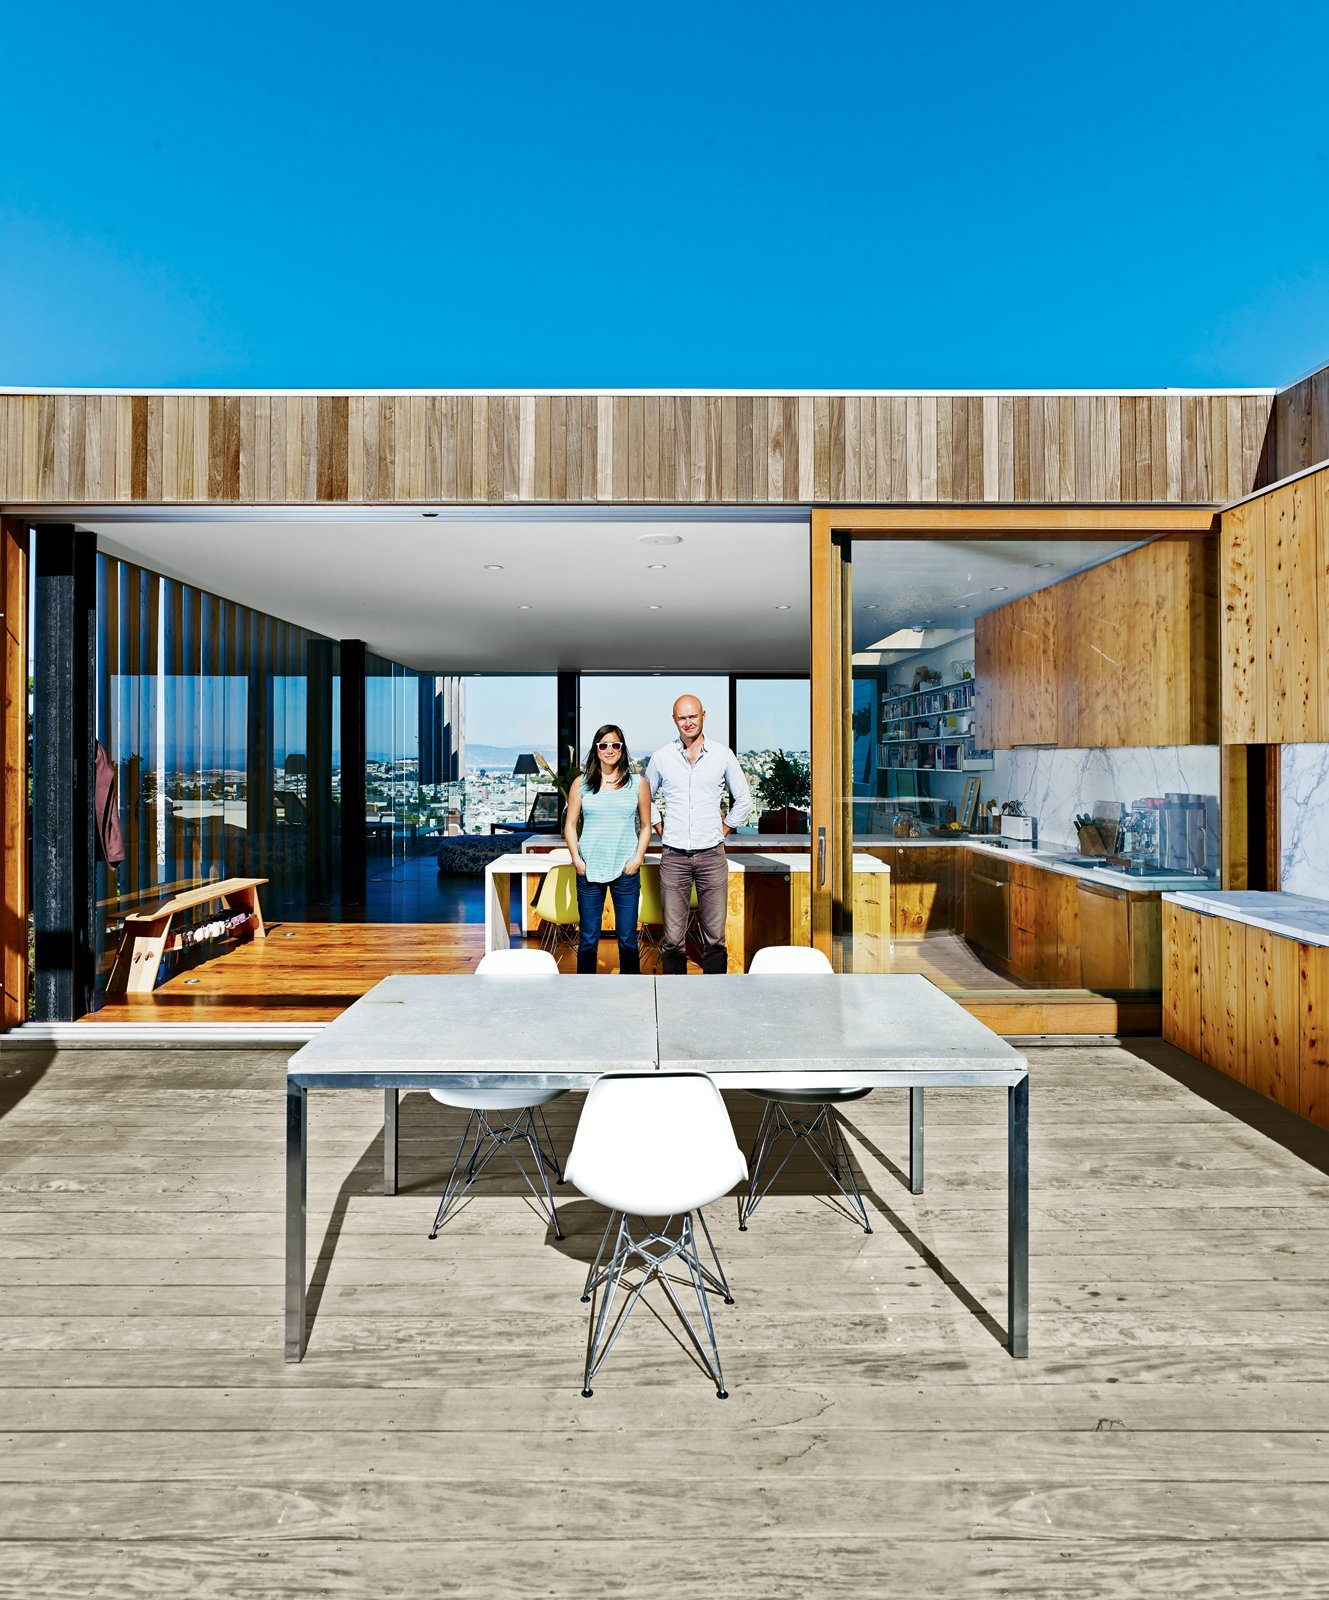 Articles about striking slatted wood and glass home san francisco on Dwell.com